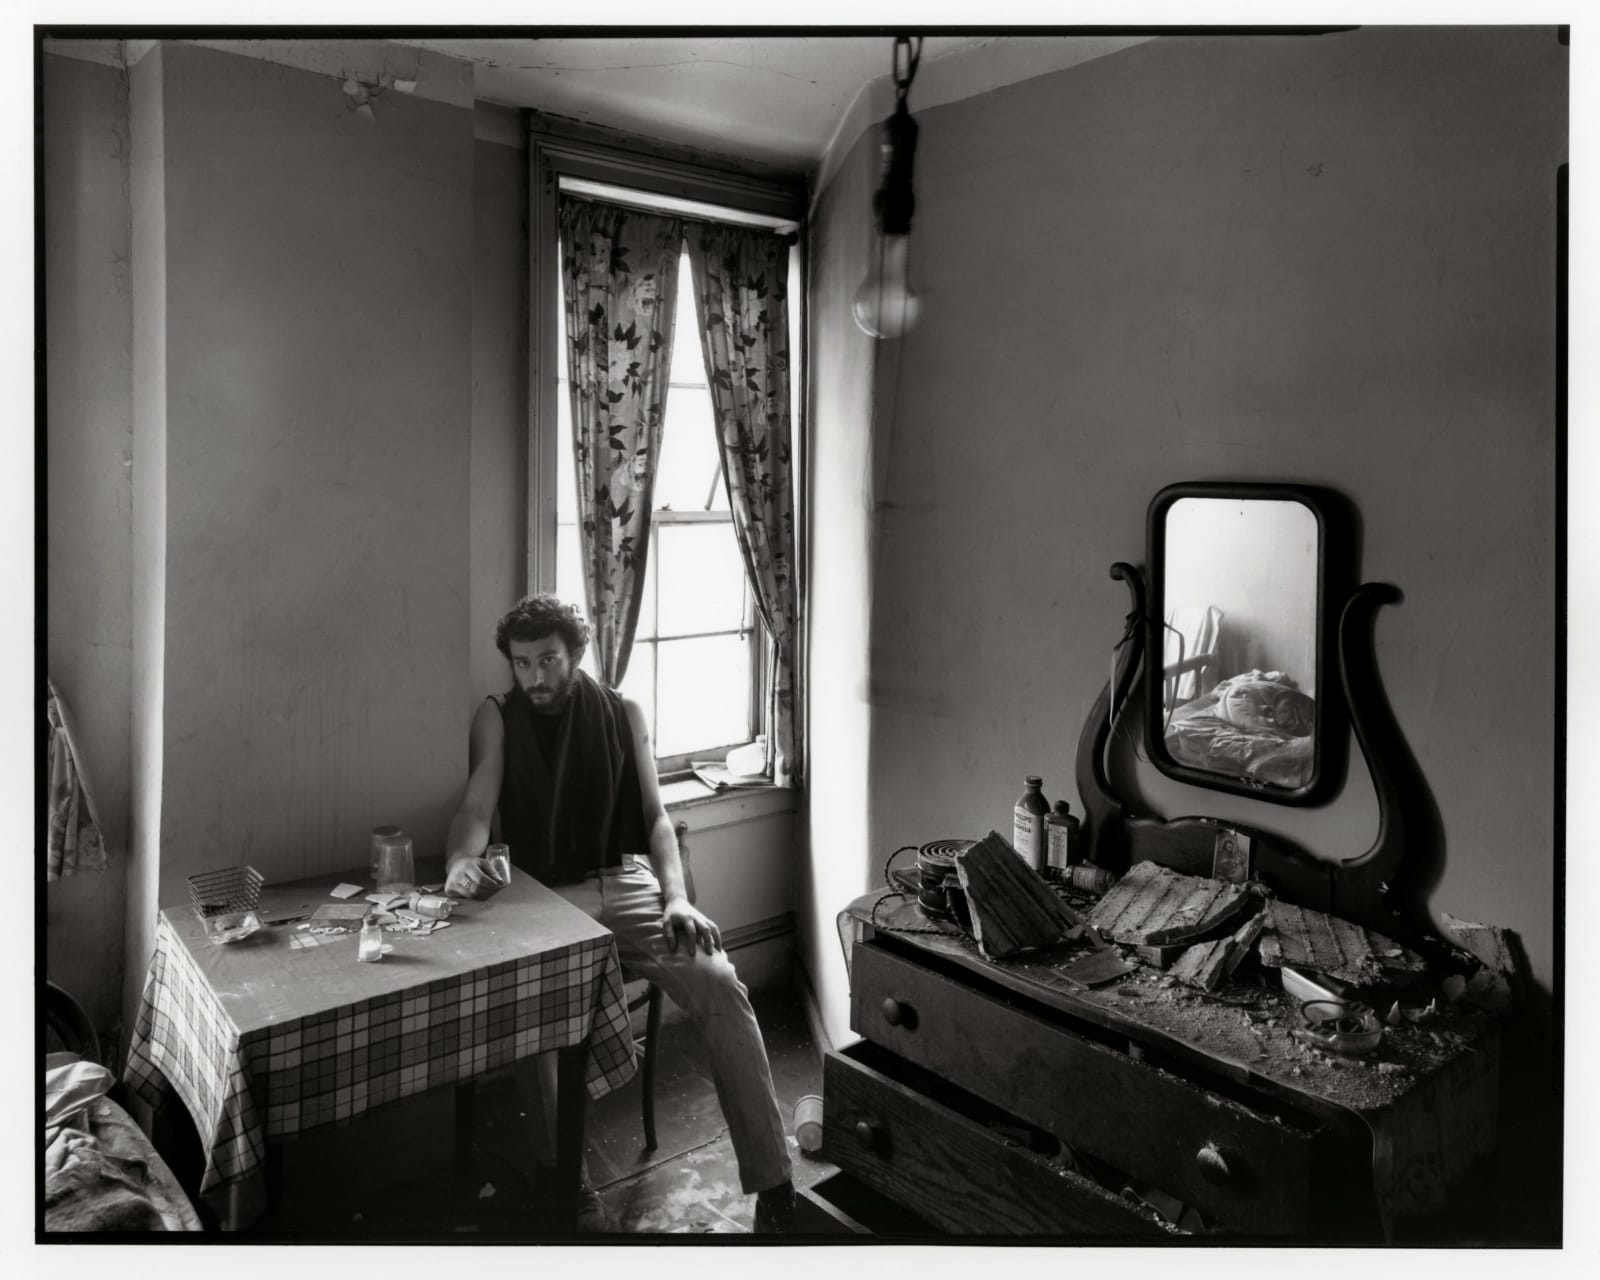 Danny Lyon - Self Portrait In An Abandoned West Street Hotel Room, Lower Manhattan, 1967